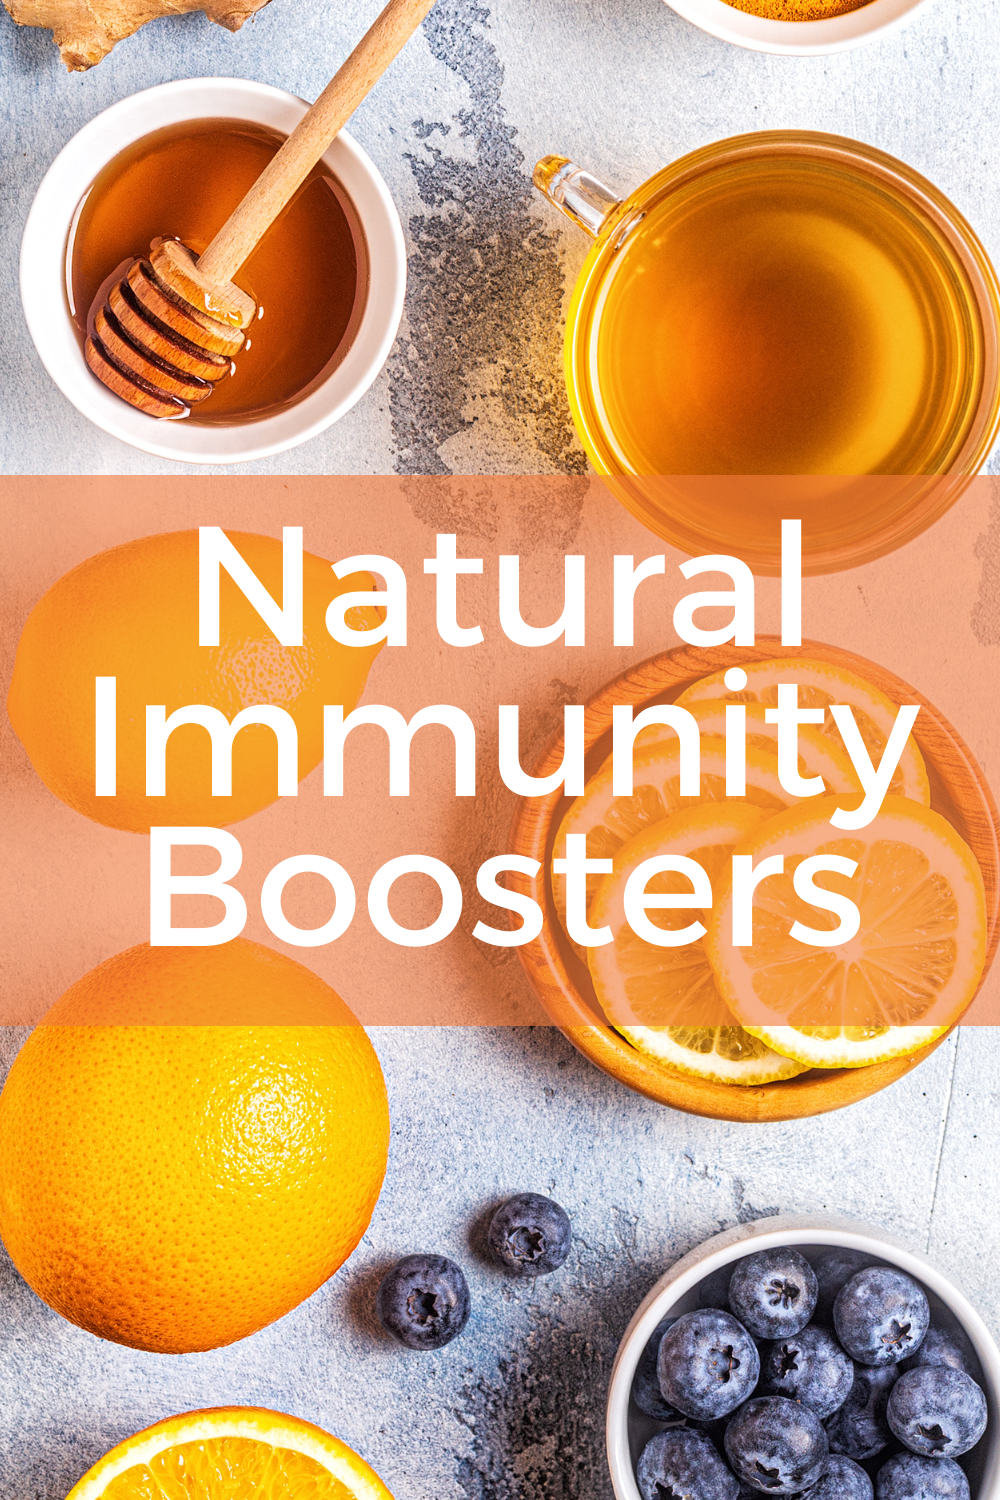 11 Herbal Immunity Boosters and Other Natural Ways to Fortify Your Immune System Fast